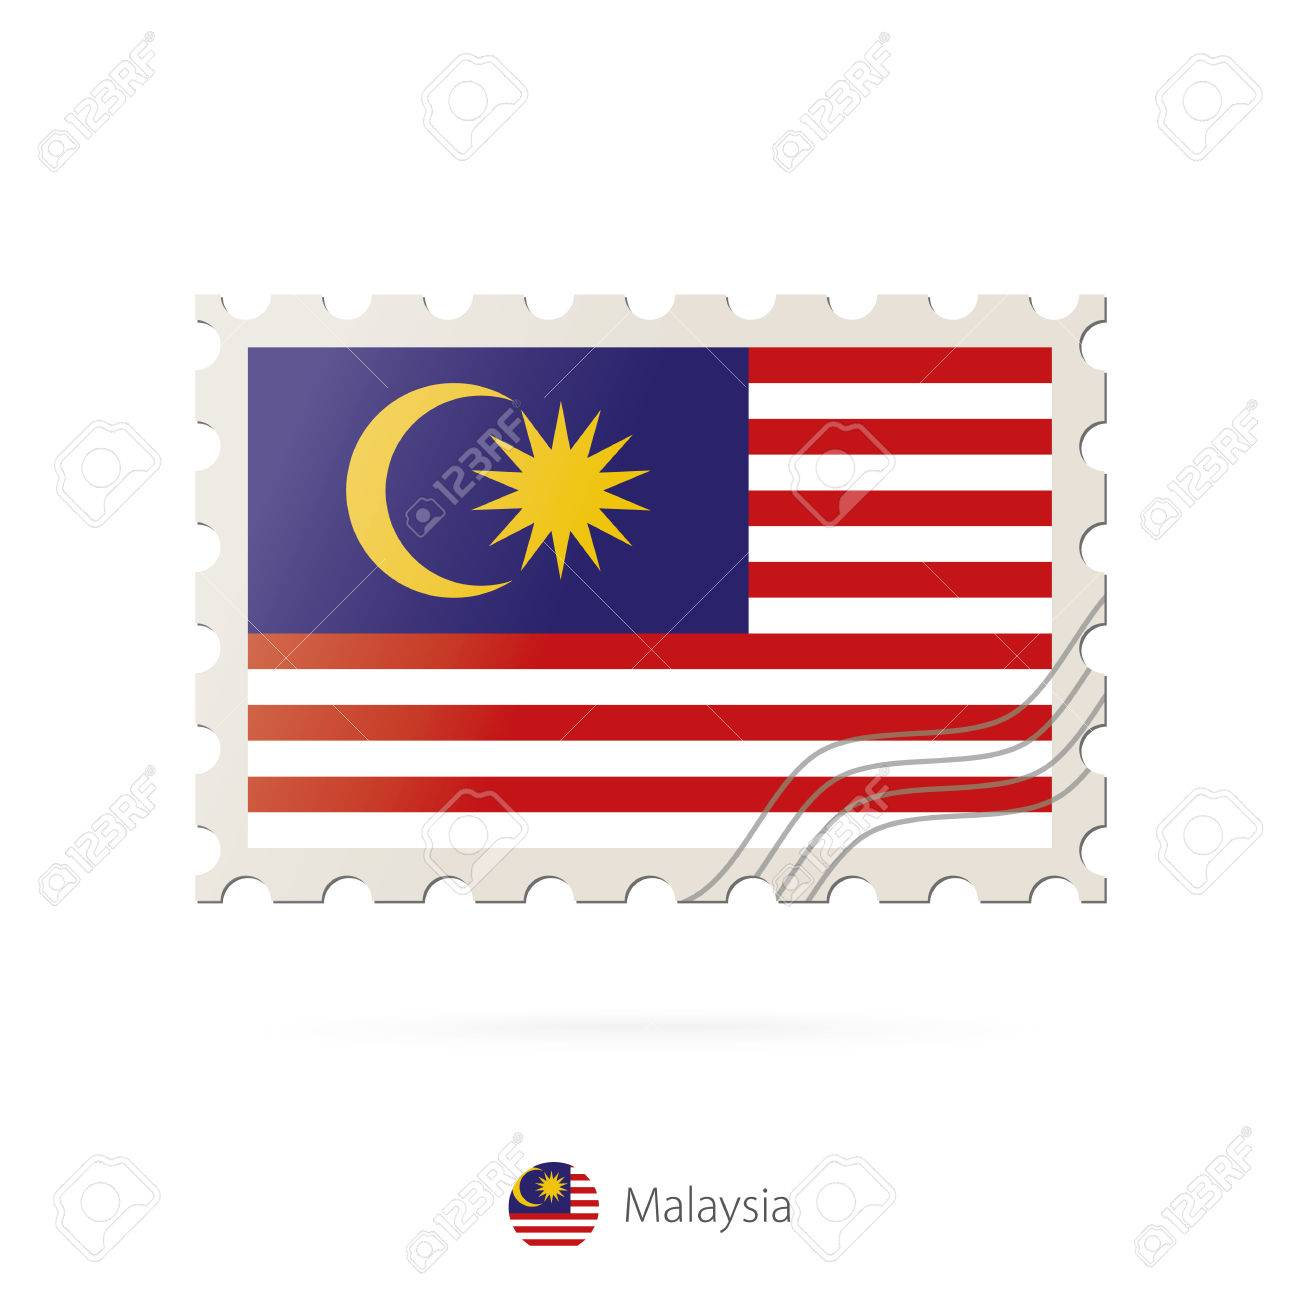 Postage stamp with the image of Malaysia flag. Malaysia Flag Postage on white background with shadow. Vector Illustration. - 56245508